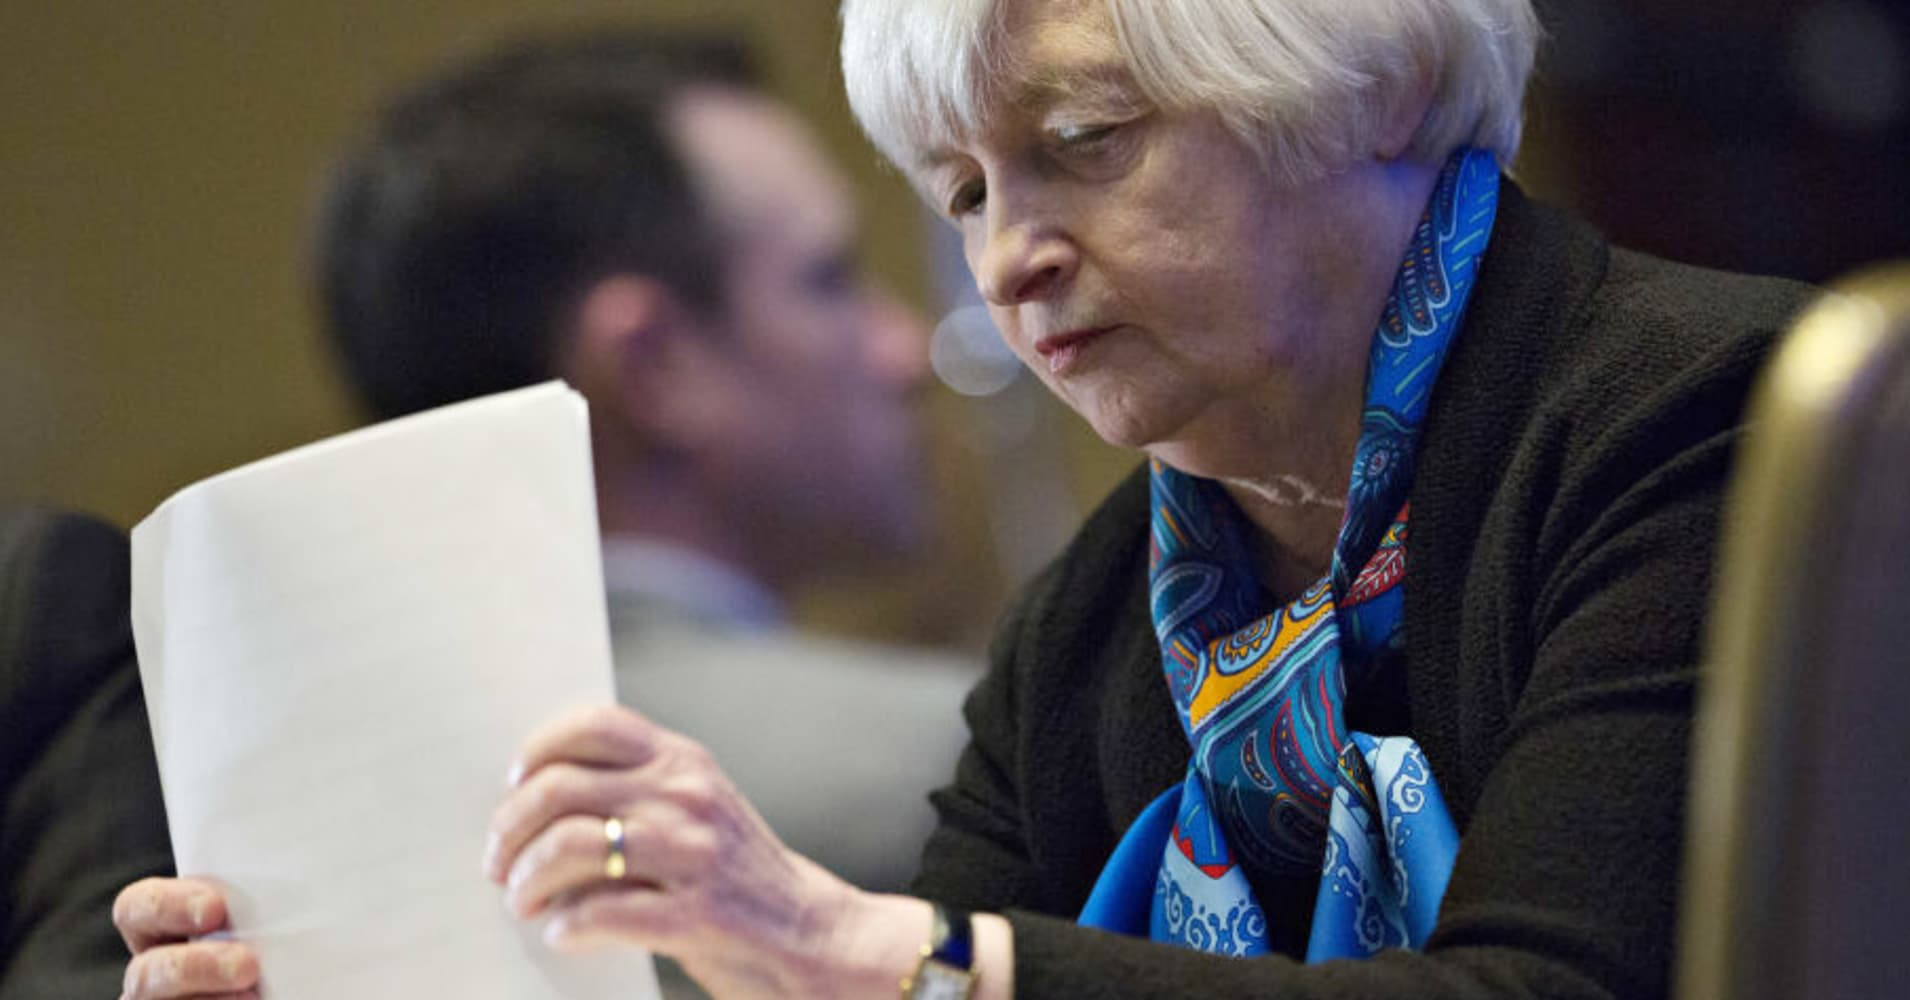 The Fed's words and China's markets: Here's what could drive the market Tuesday